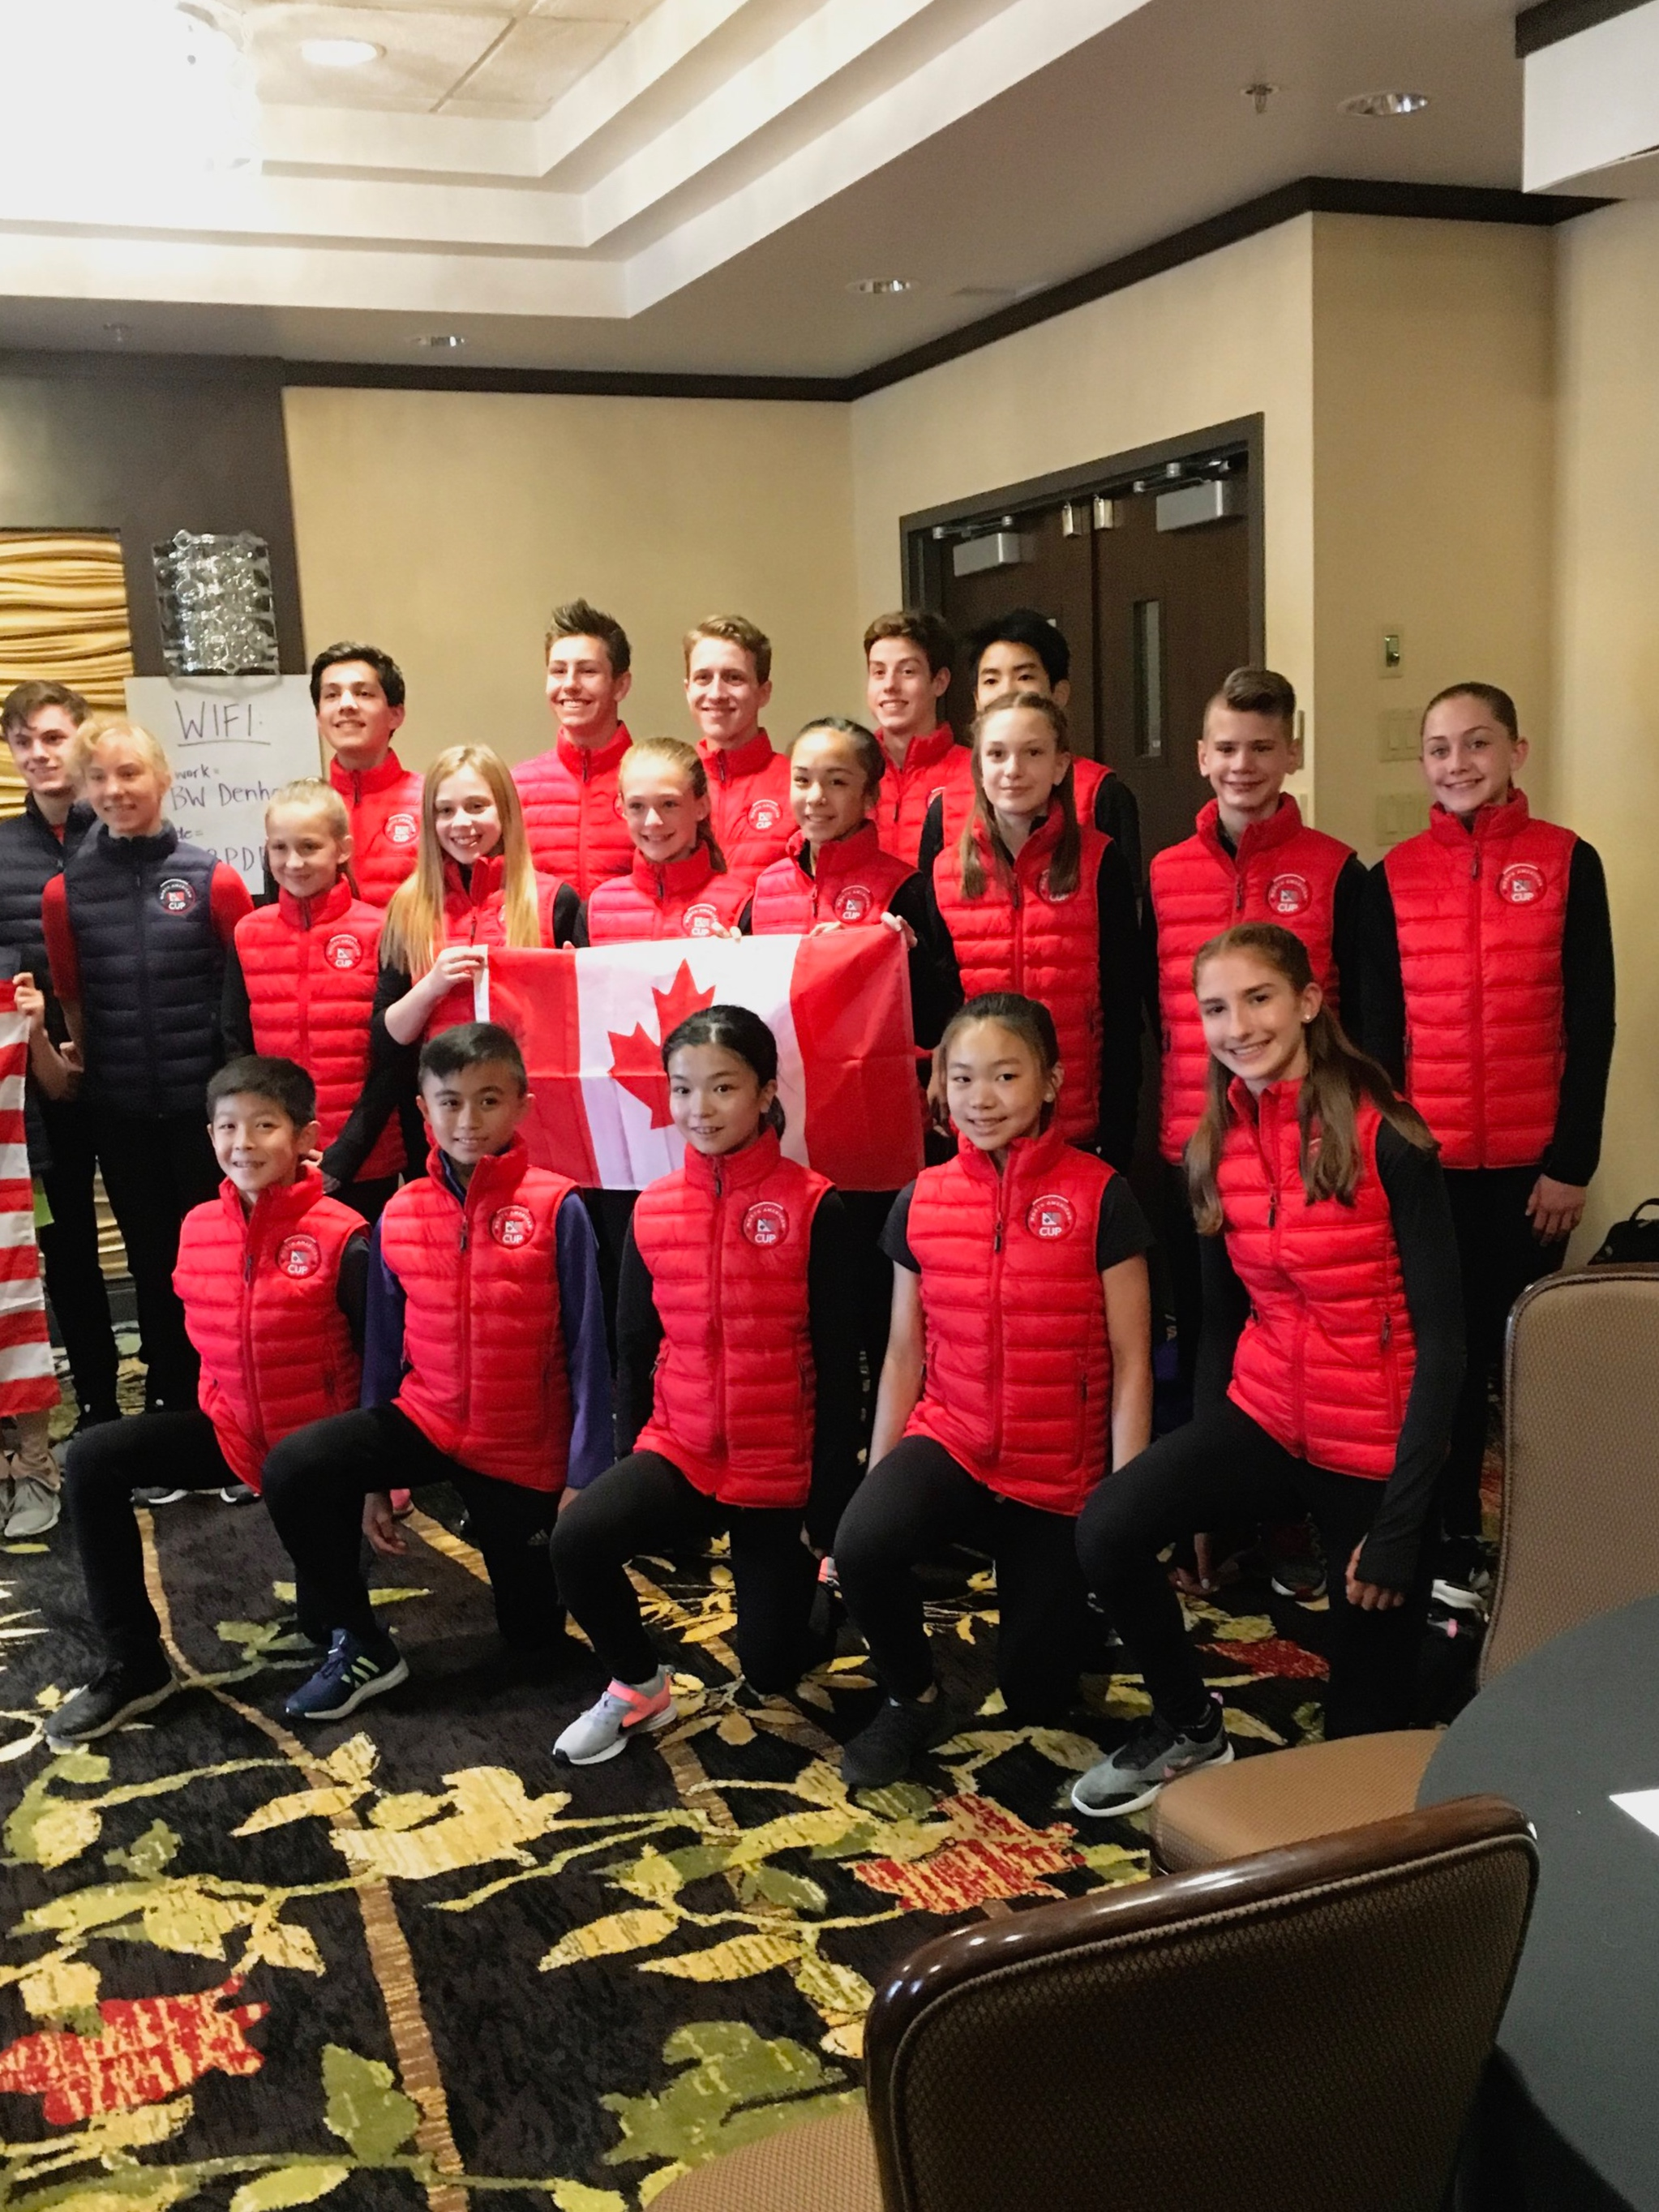 Team Canada at the 2019 North American Cup in Leduc, AB